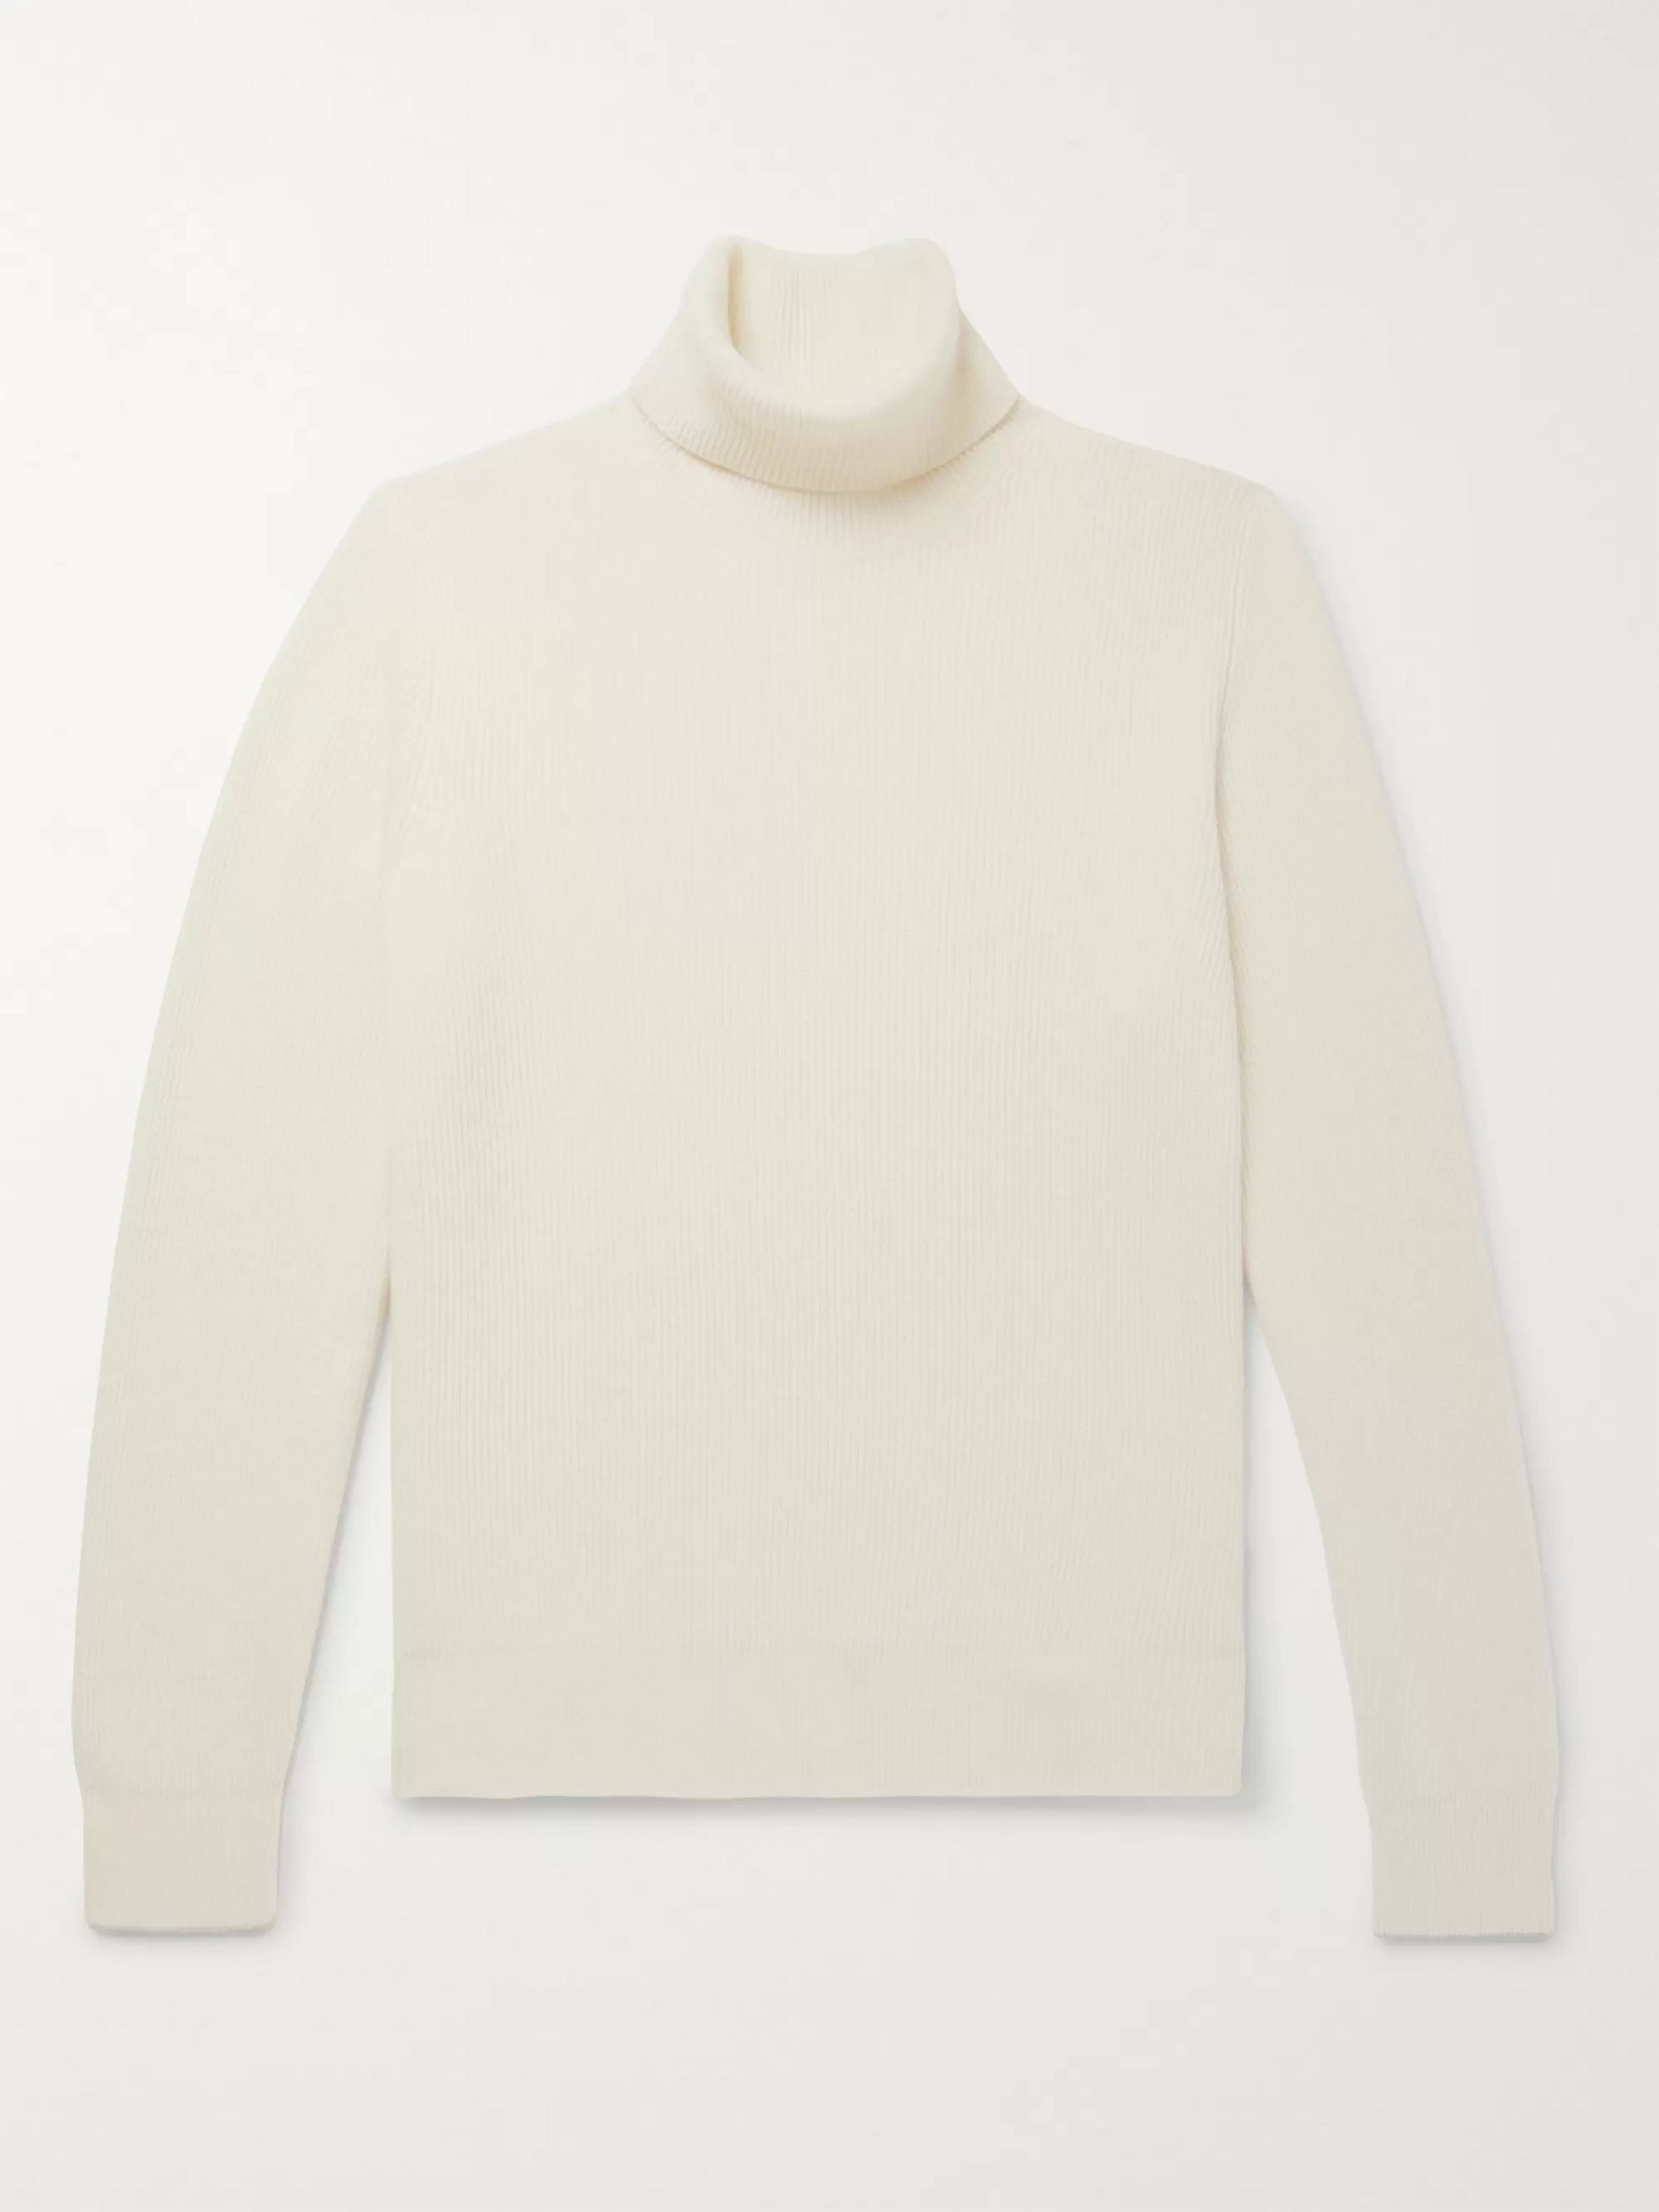 Brunello Cucinelli Cashmere Rollneck Sweater